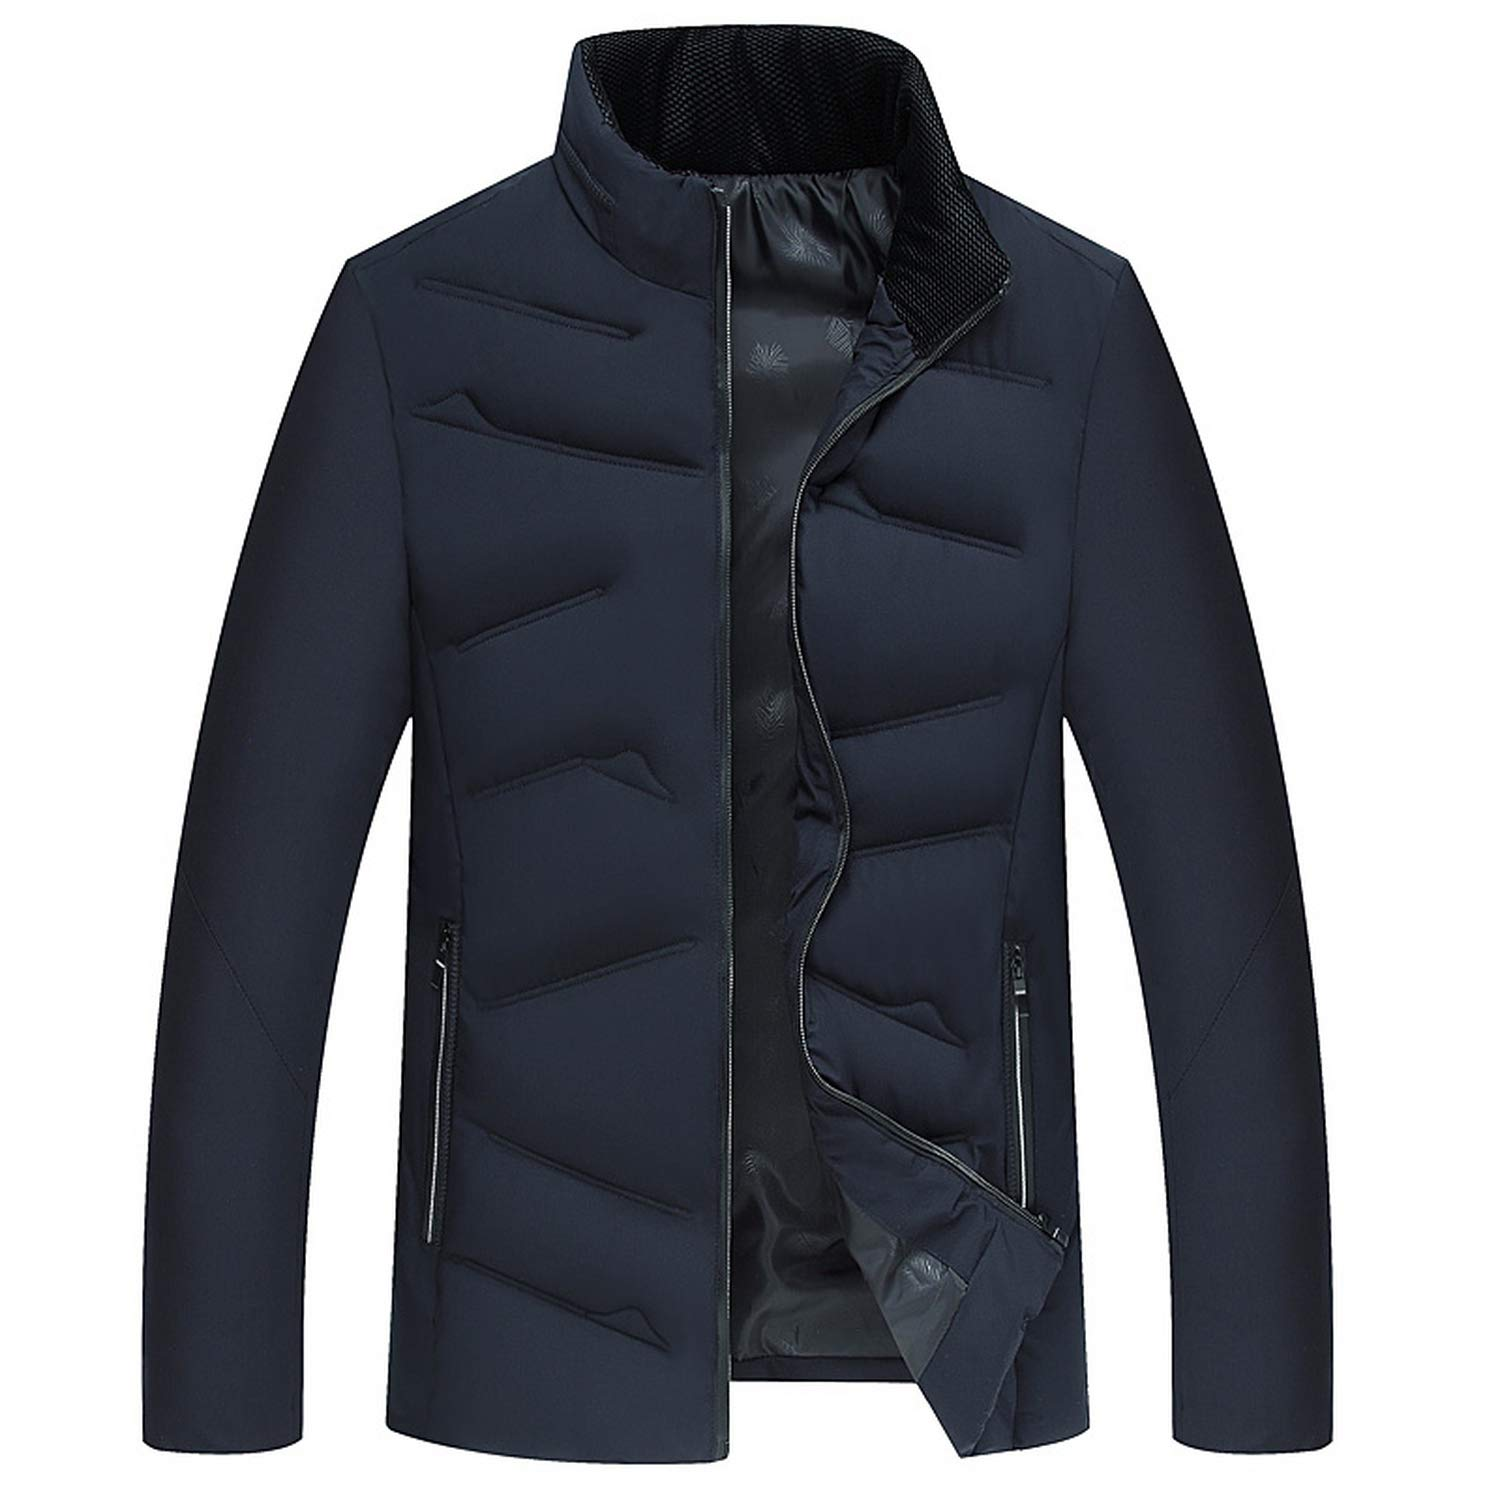 Winter Jacket Cotton Padded Warm Thicken Short Coat Clothing Stand Collar Male Solid Coat